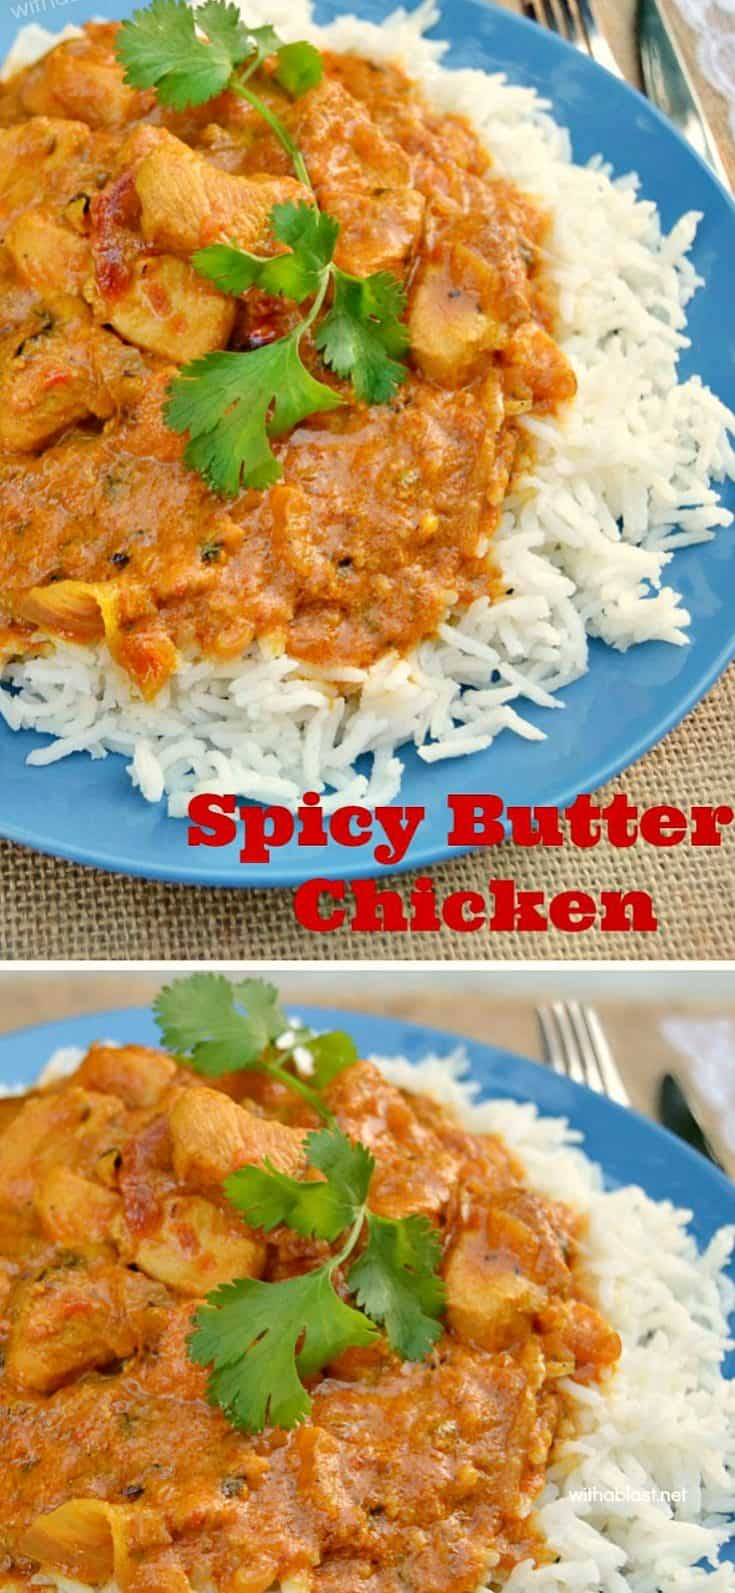 Spicy Butter Chicken is the best spicy Chicken we have ever had and so easy to make too ~ Perfect comfort food for the whole family ! #ButterChicken #BestButterChicken #SpicyButterChicken #SpicyChicken #ComfortFood